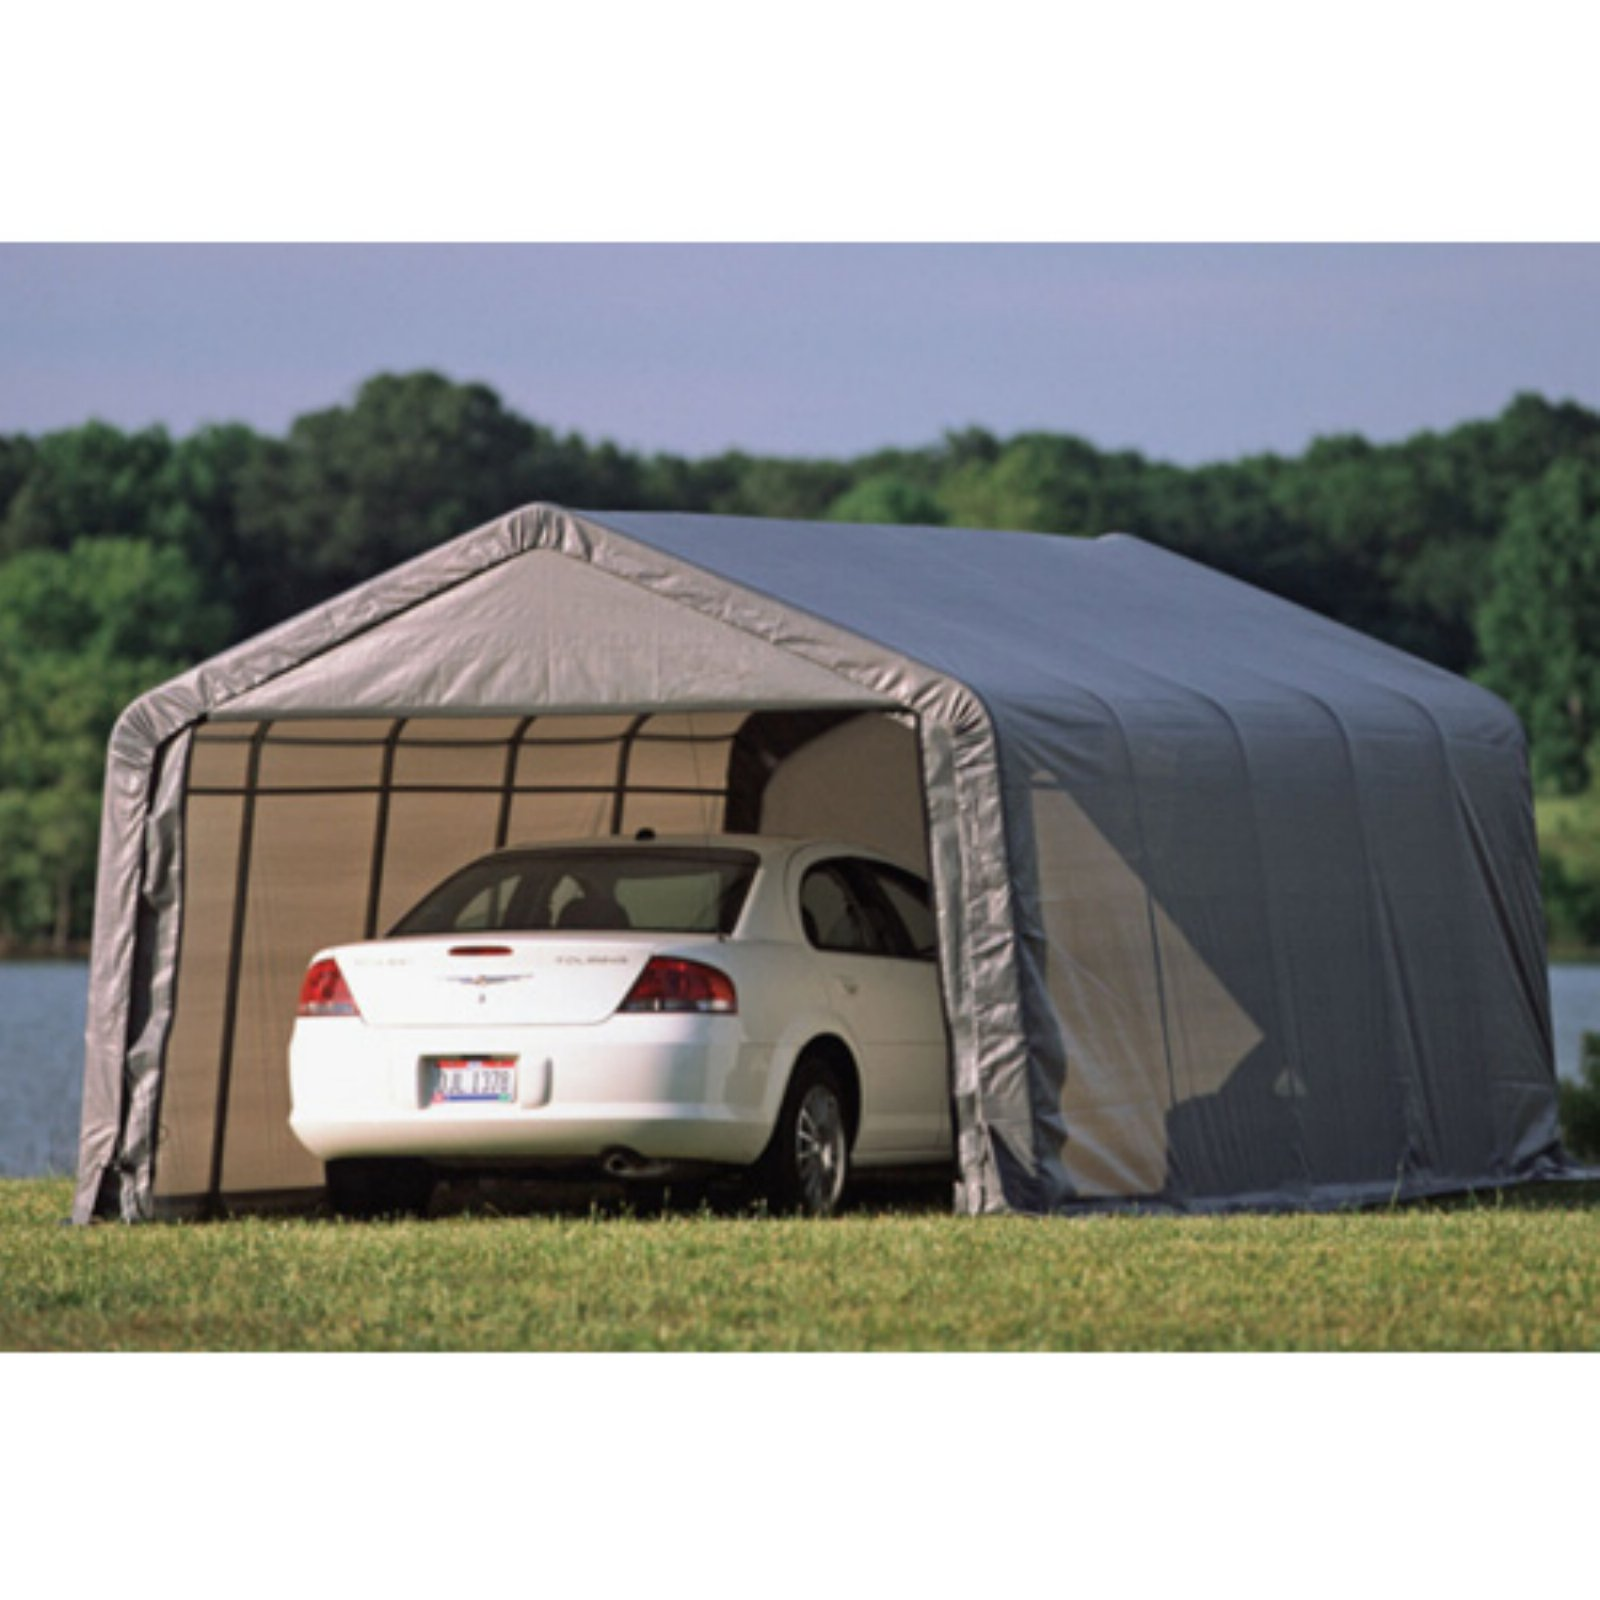 ShelterLogic 12 x 20 x 10 ft. Instant Garage Heavy Duty Canopy Carport by Instant Garages